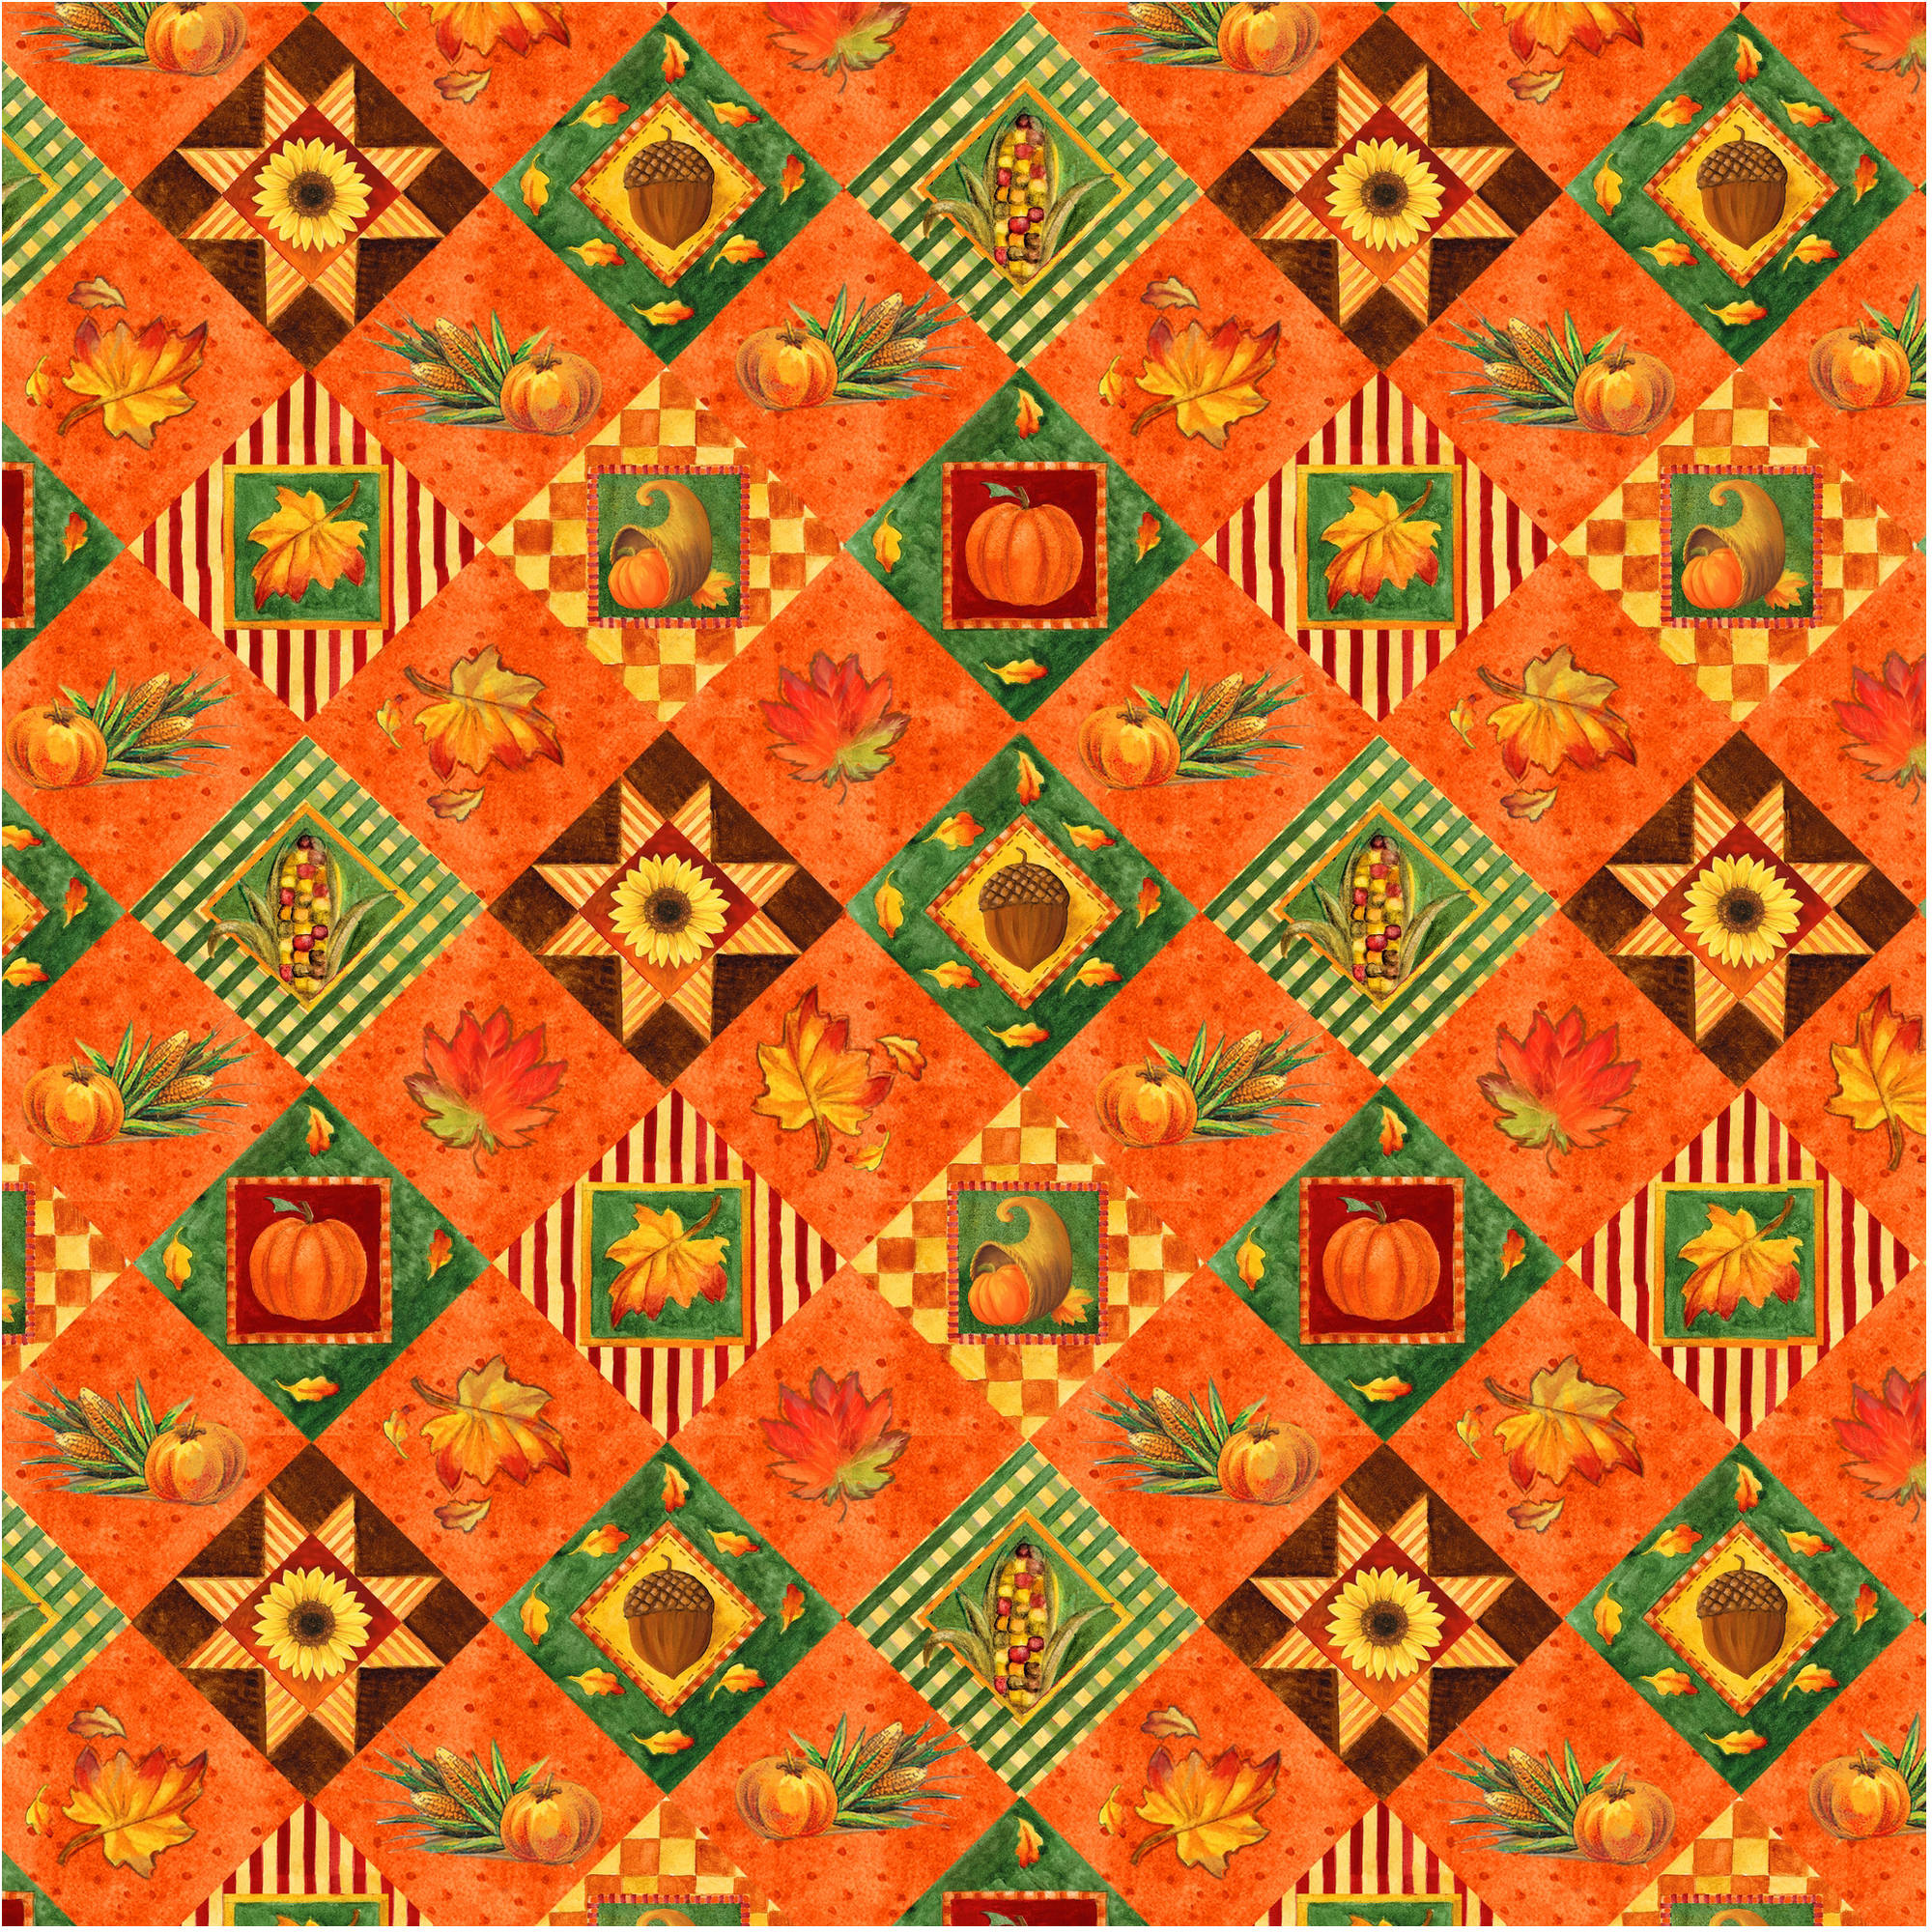 Harvest Autumn Quilt Cotton By The Yard, 44""